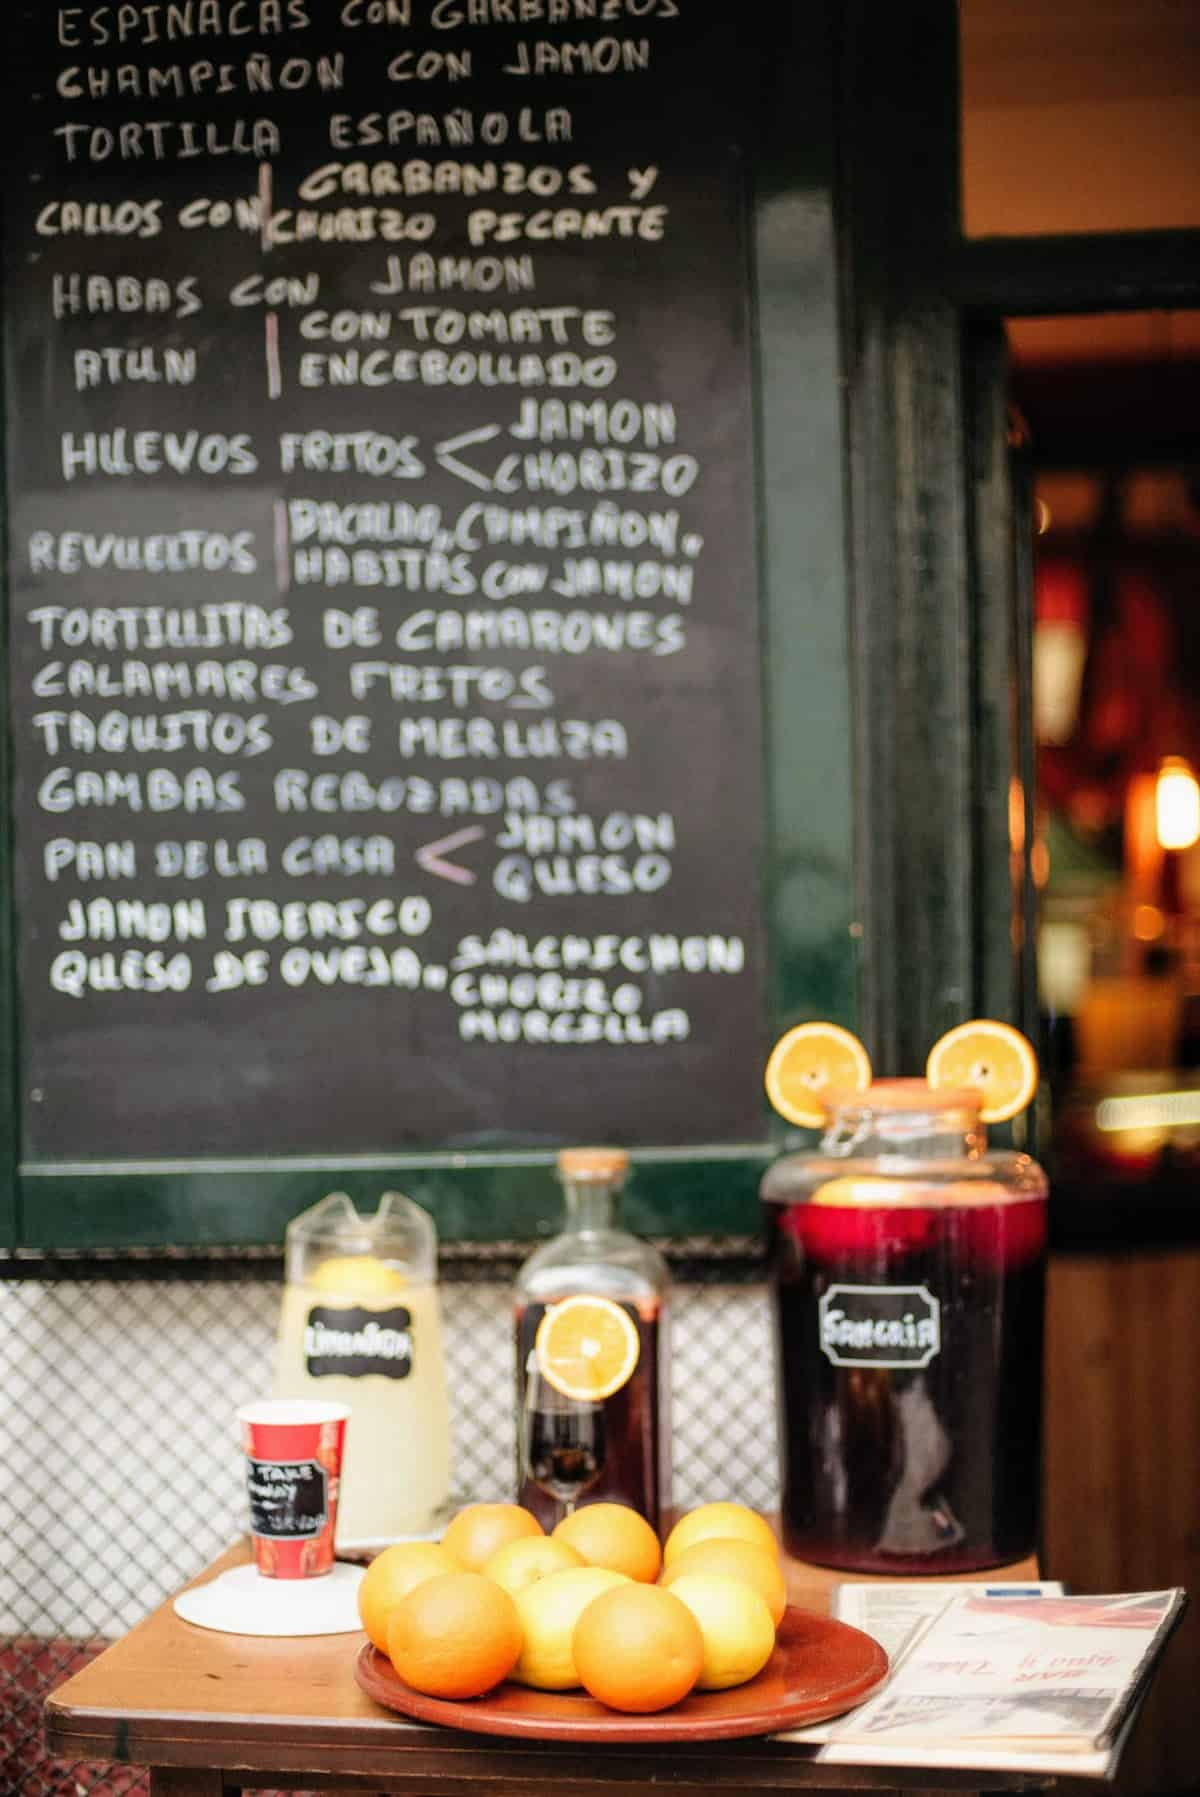 Large jugs of sangria and lemonade behind a tray of oranges, with a chalkboard menu in the background.